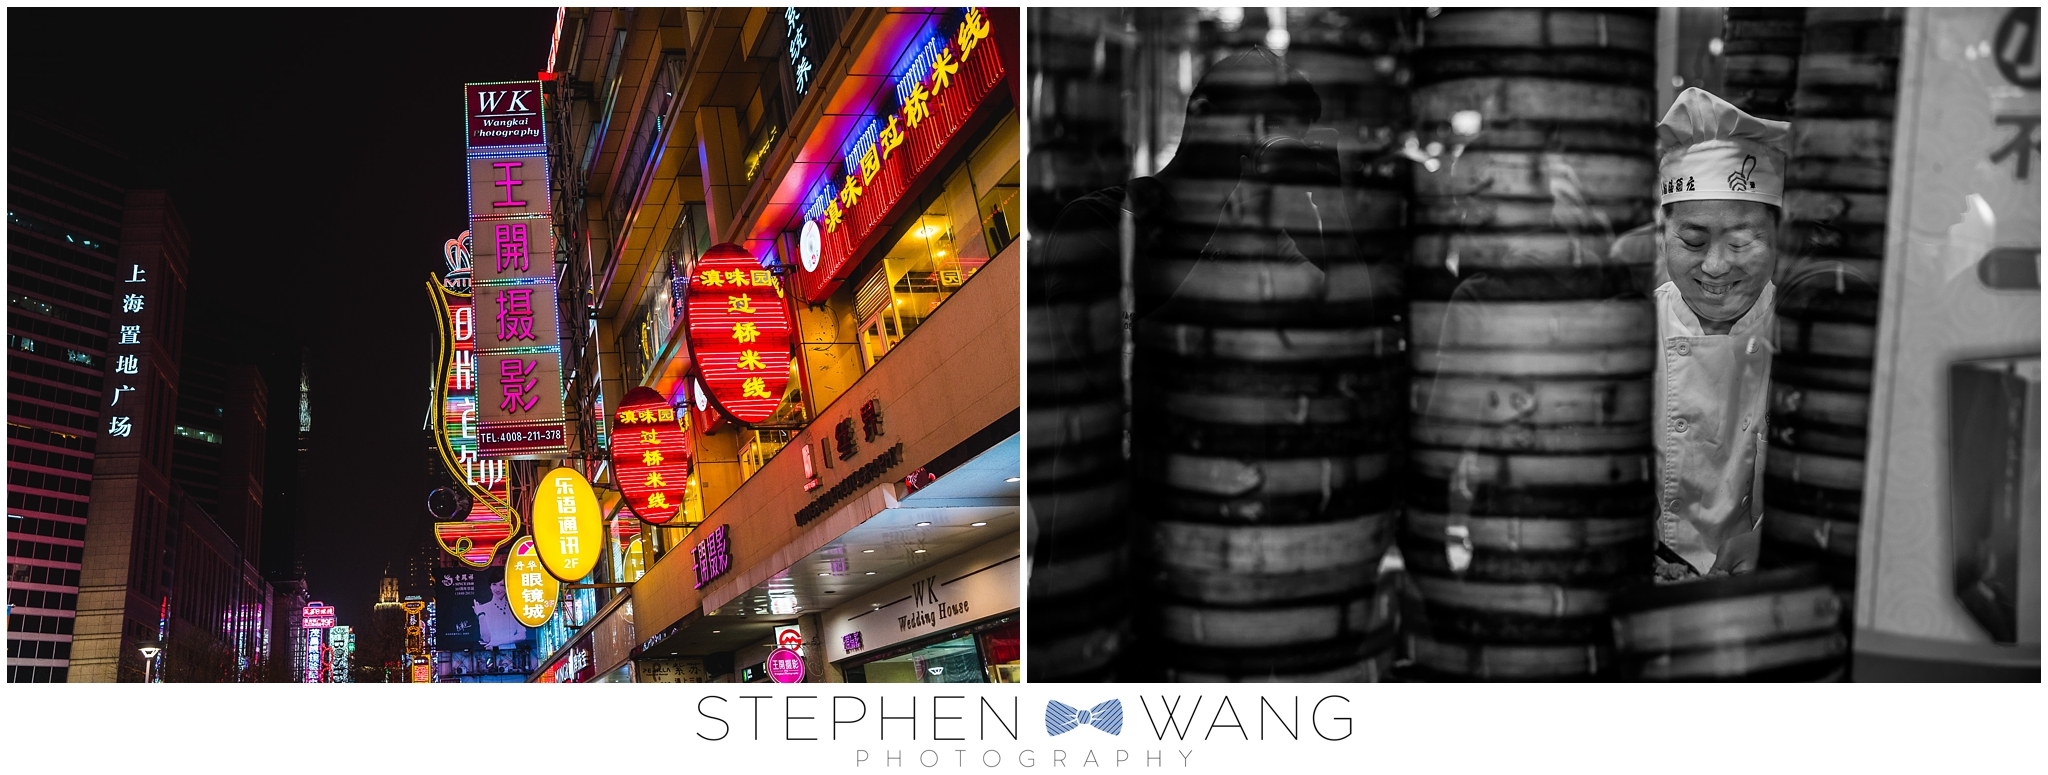 Nanjing Road in Shanghai with its lit up neon signs.  Times Square of the East!